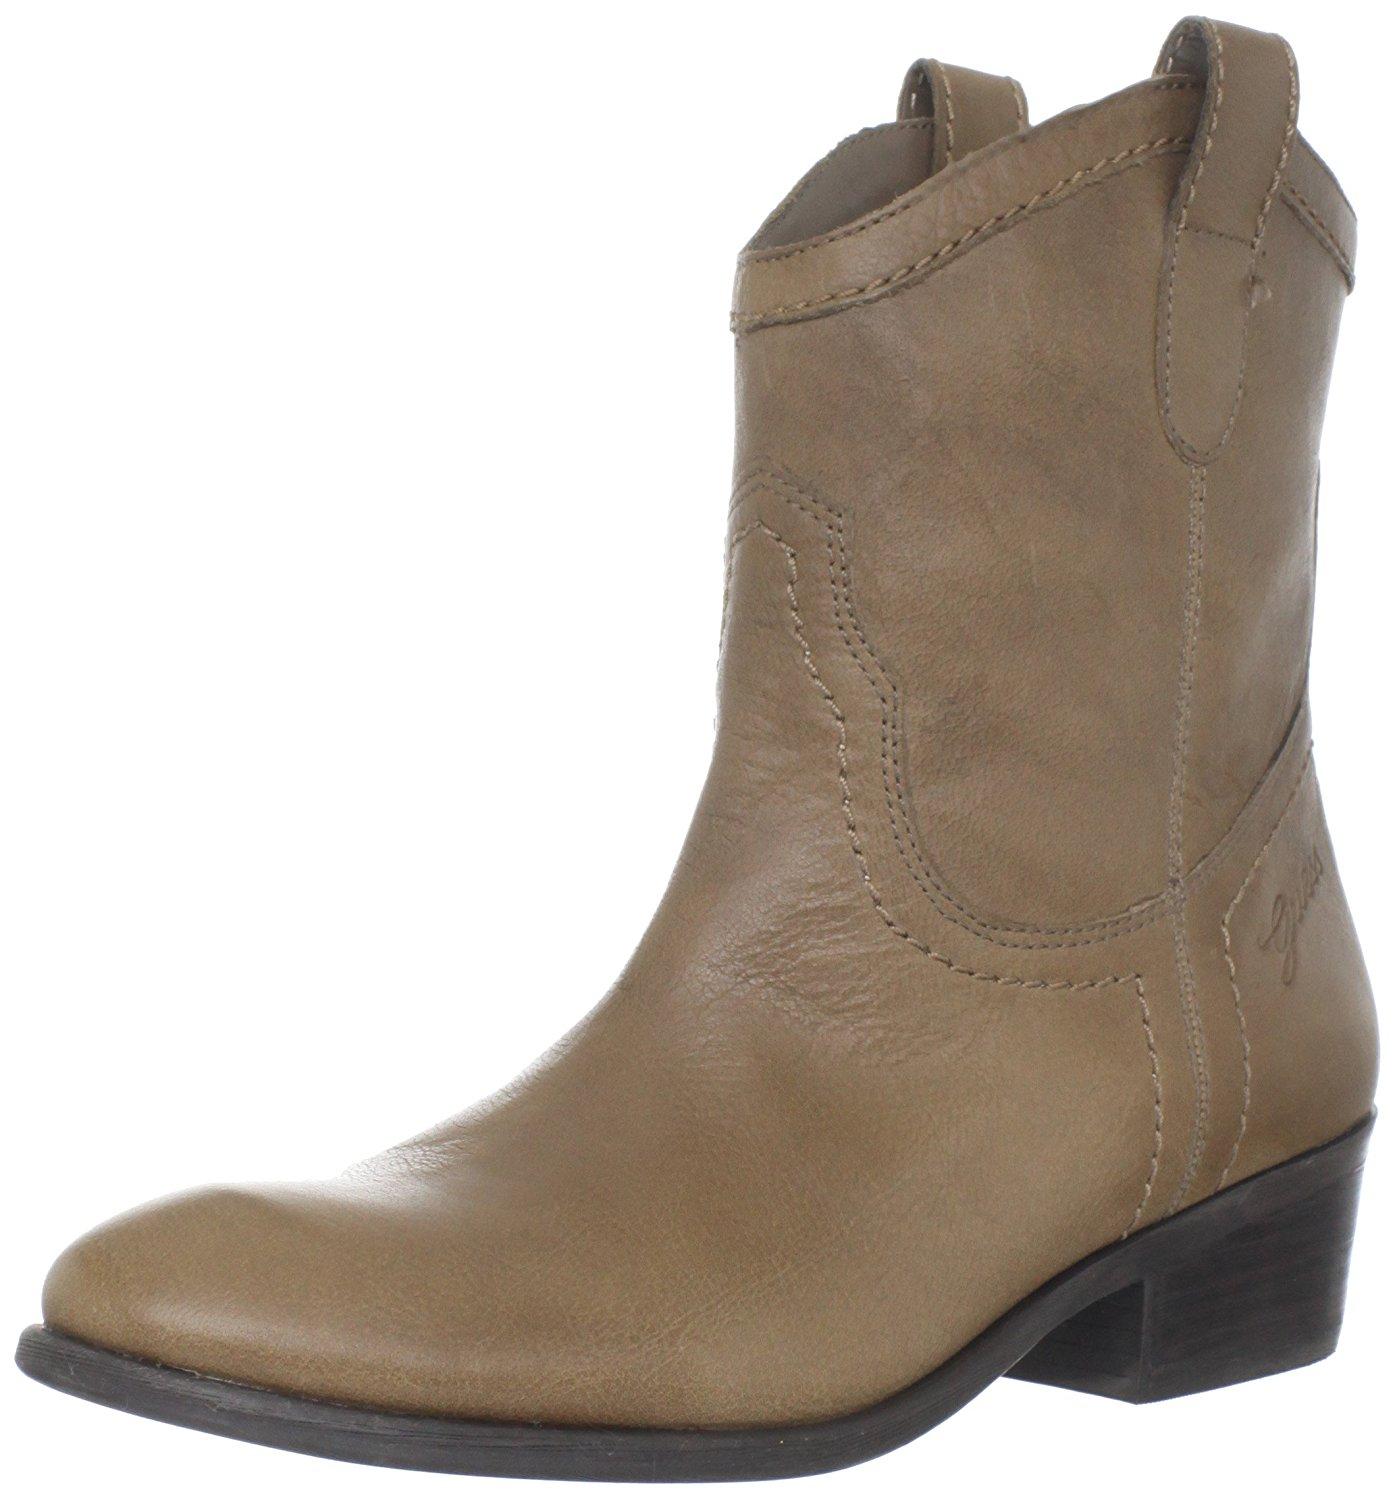 Guess Gennette womens boots TAUPE 5 US/3 UK